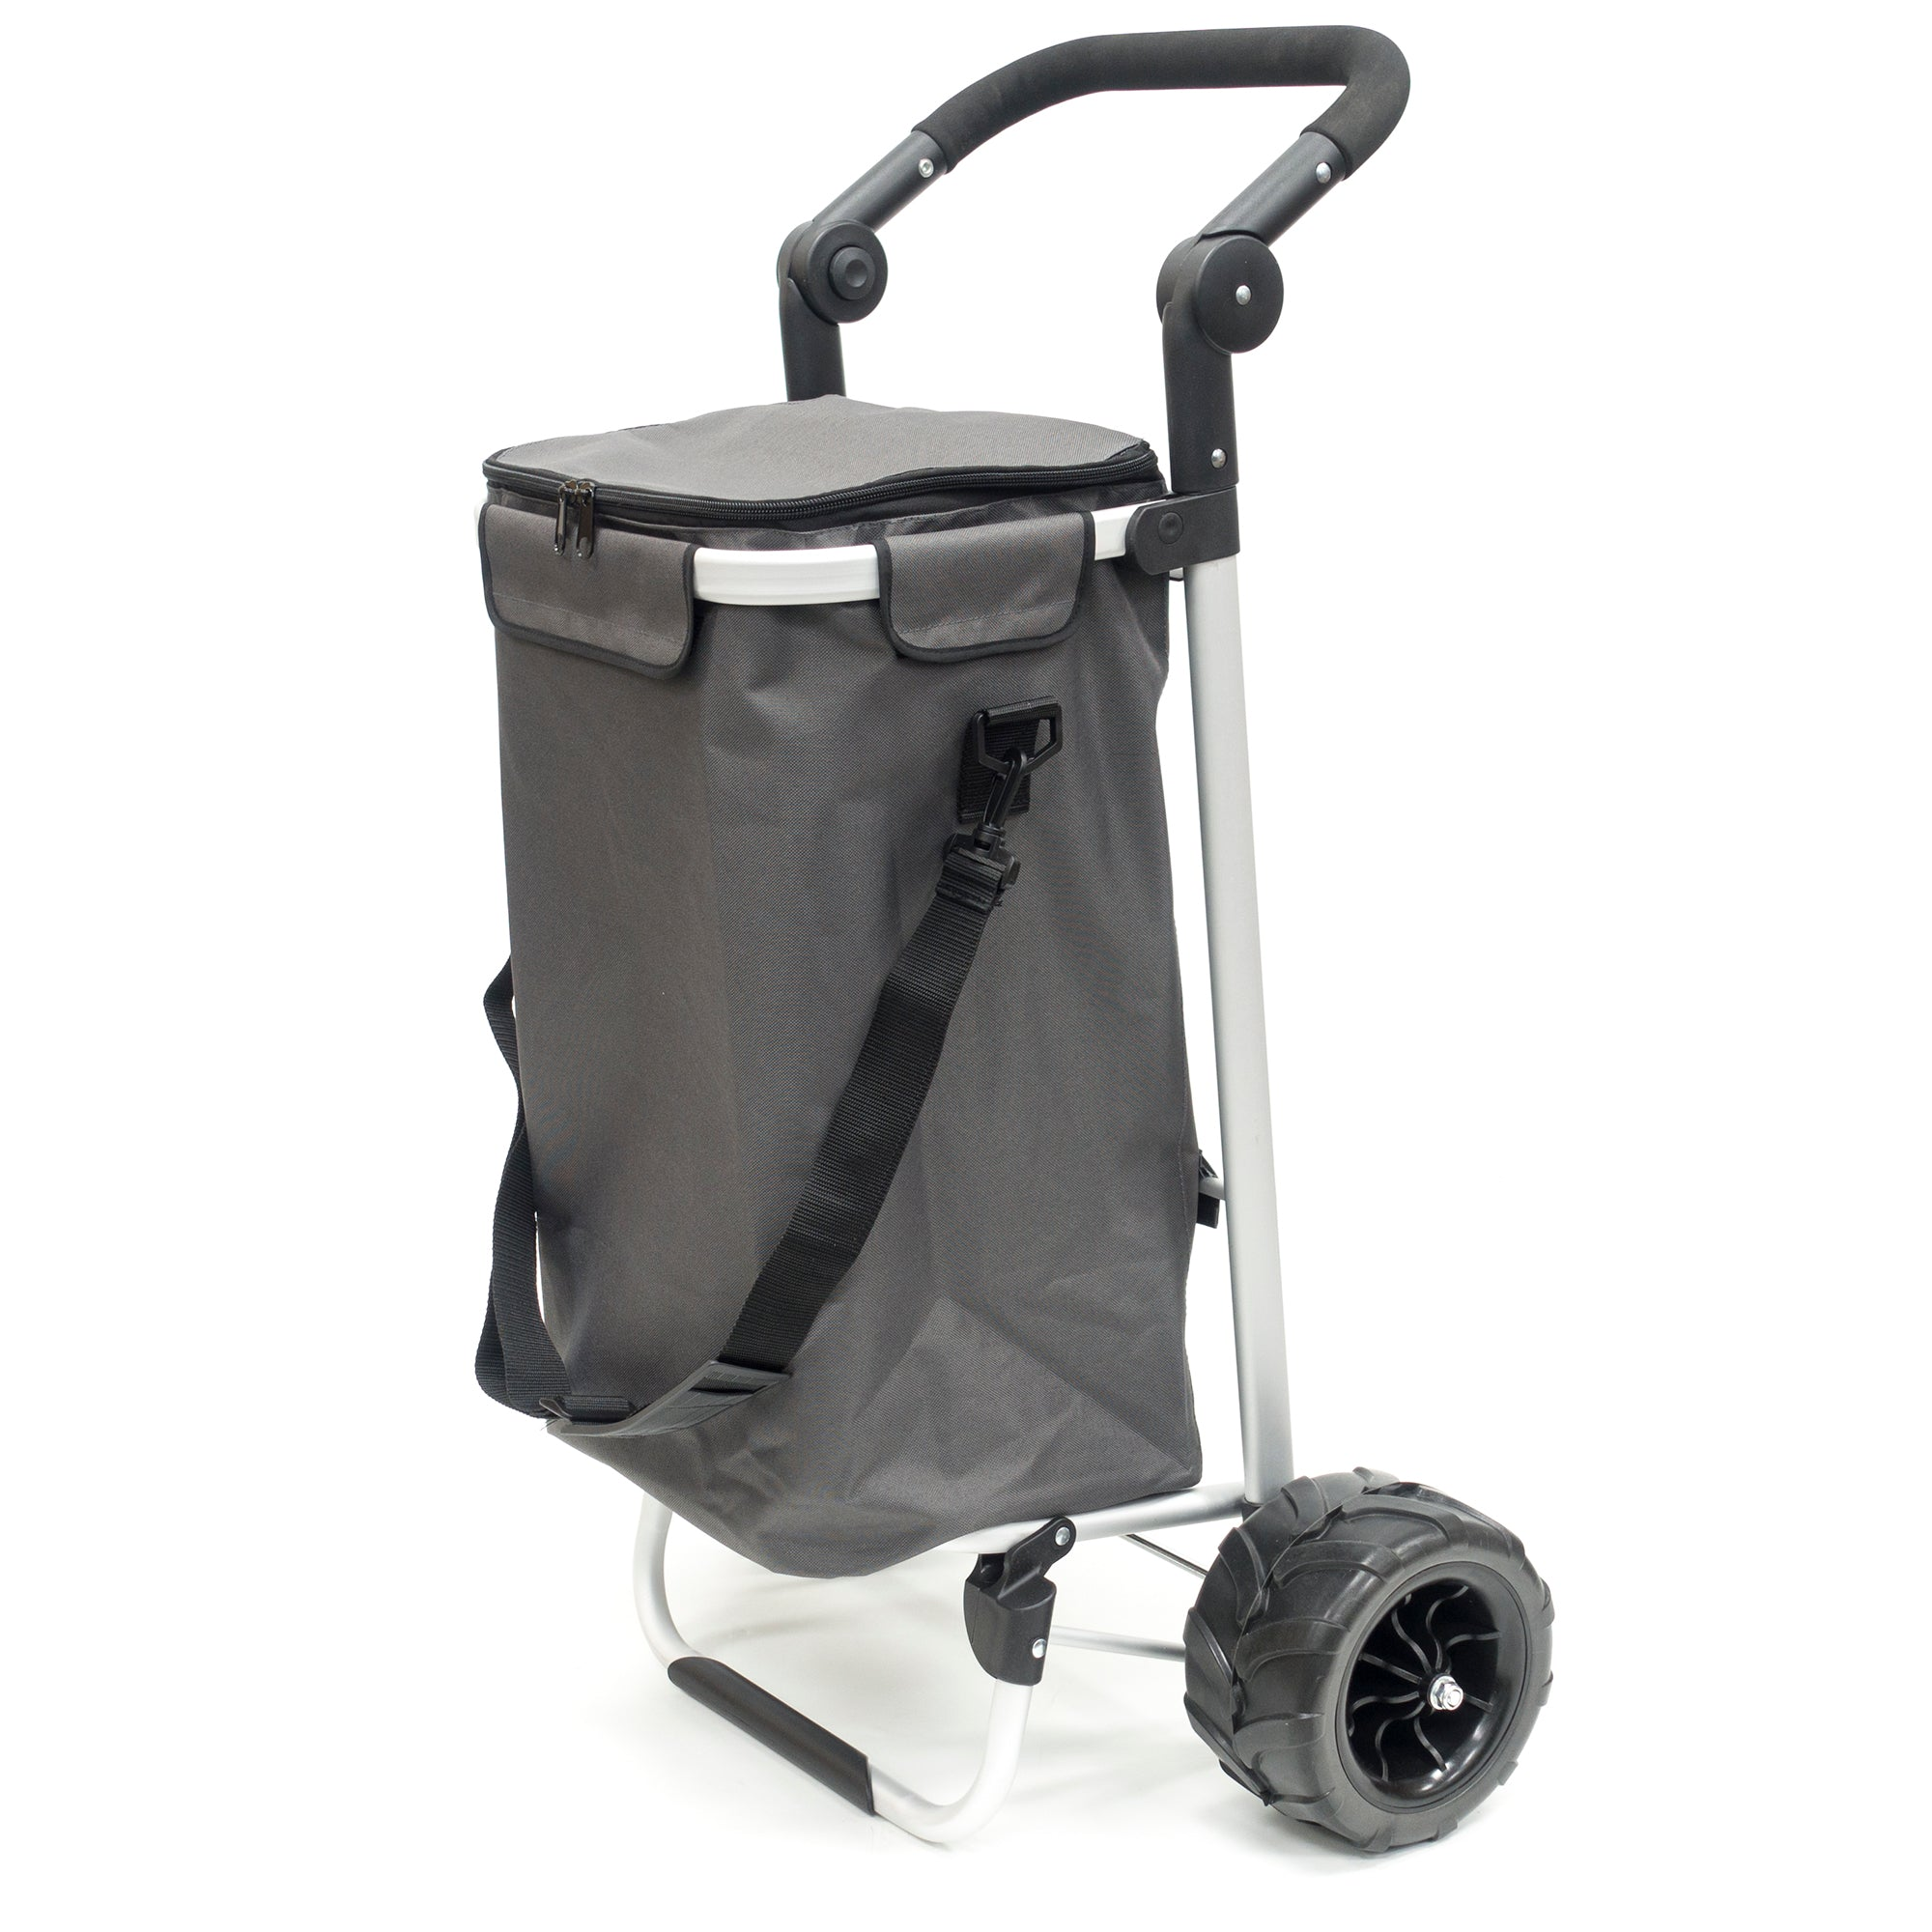 All-Terrain Folding Aluminum Trolley with Adjustable Handle Gray 890310